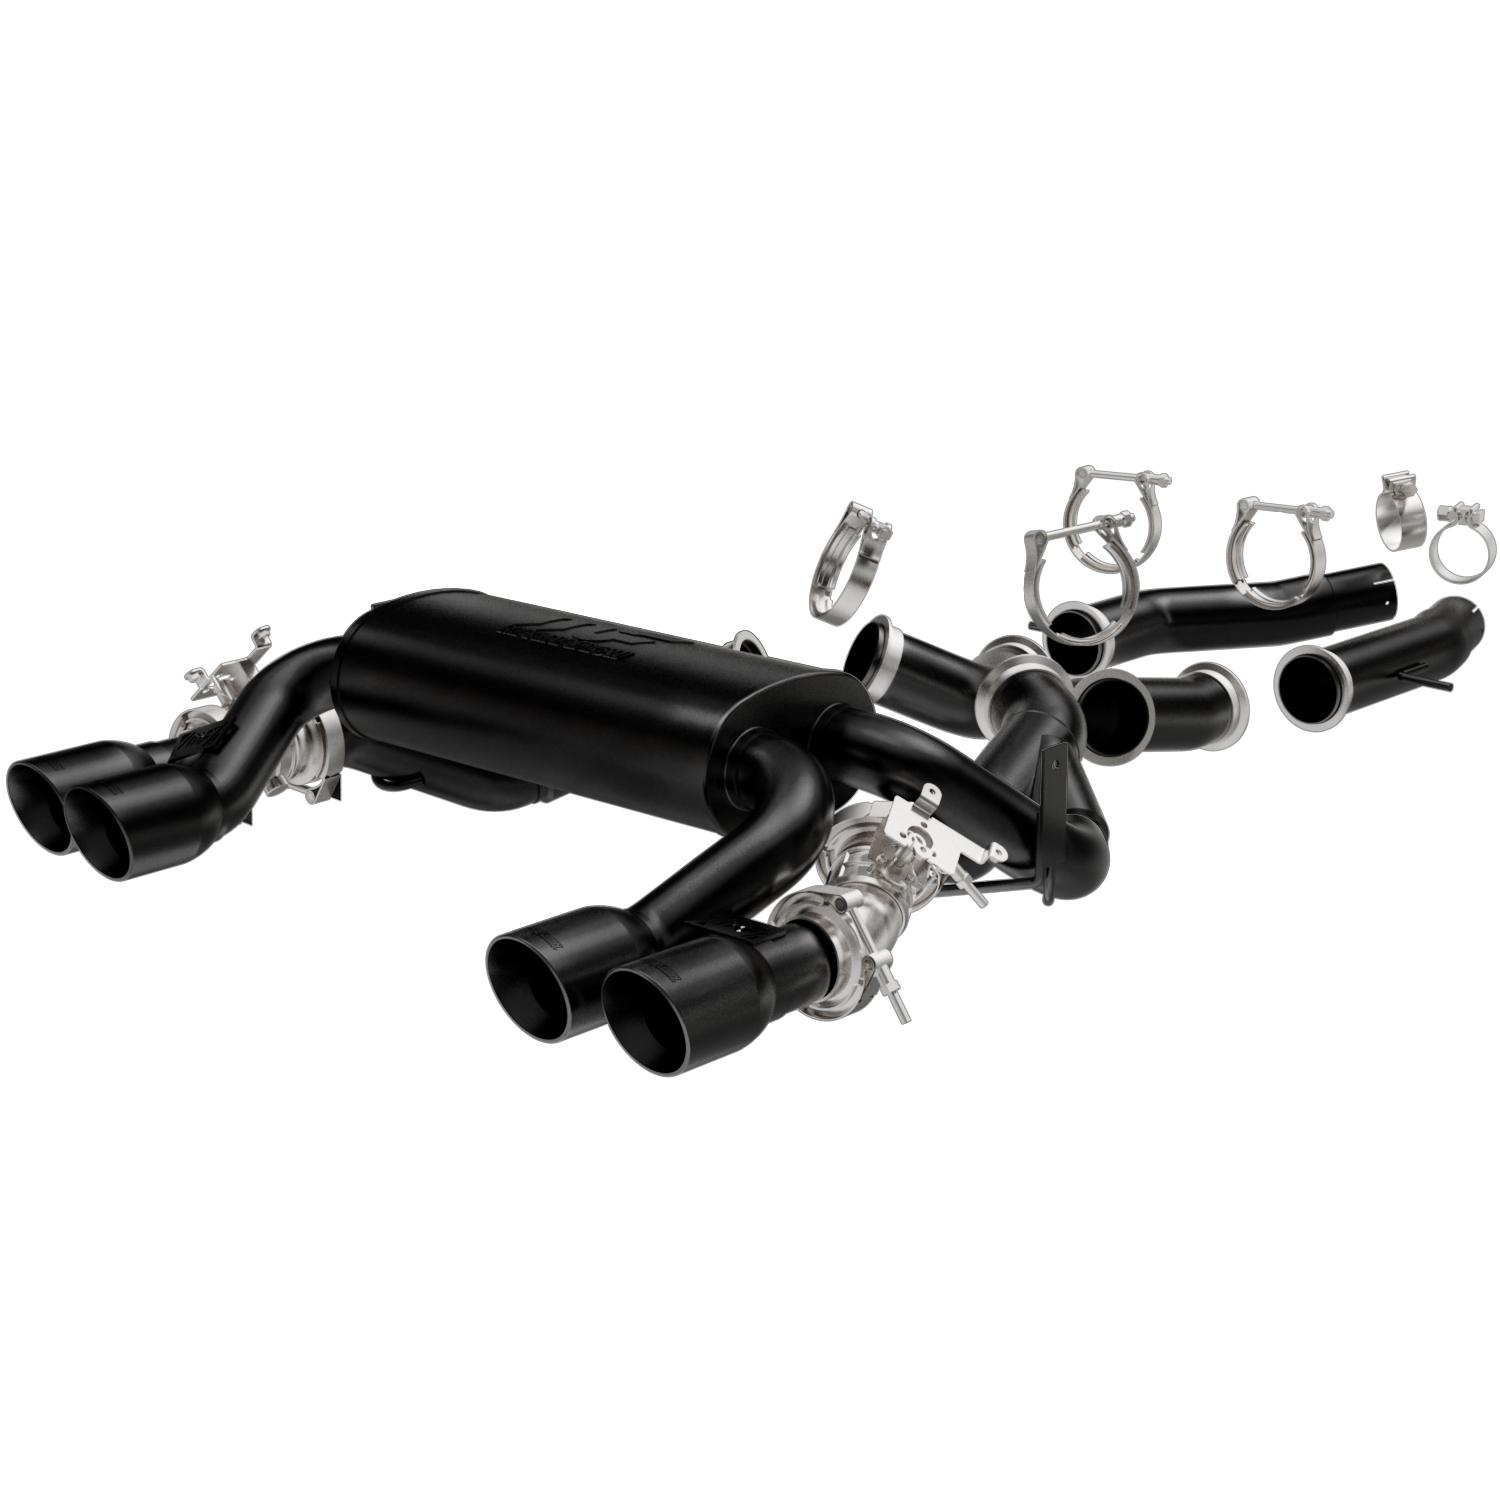 touring-series-black-axle-back-system